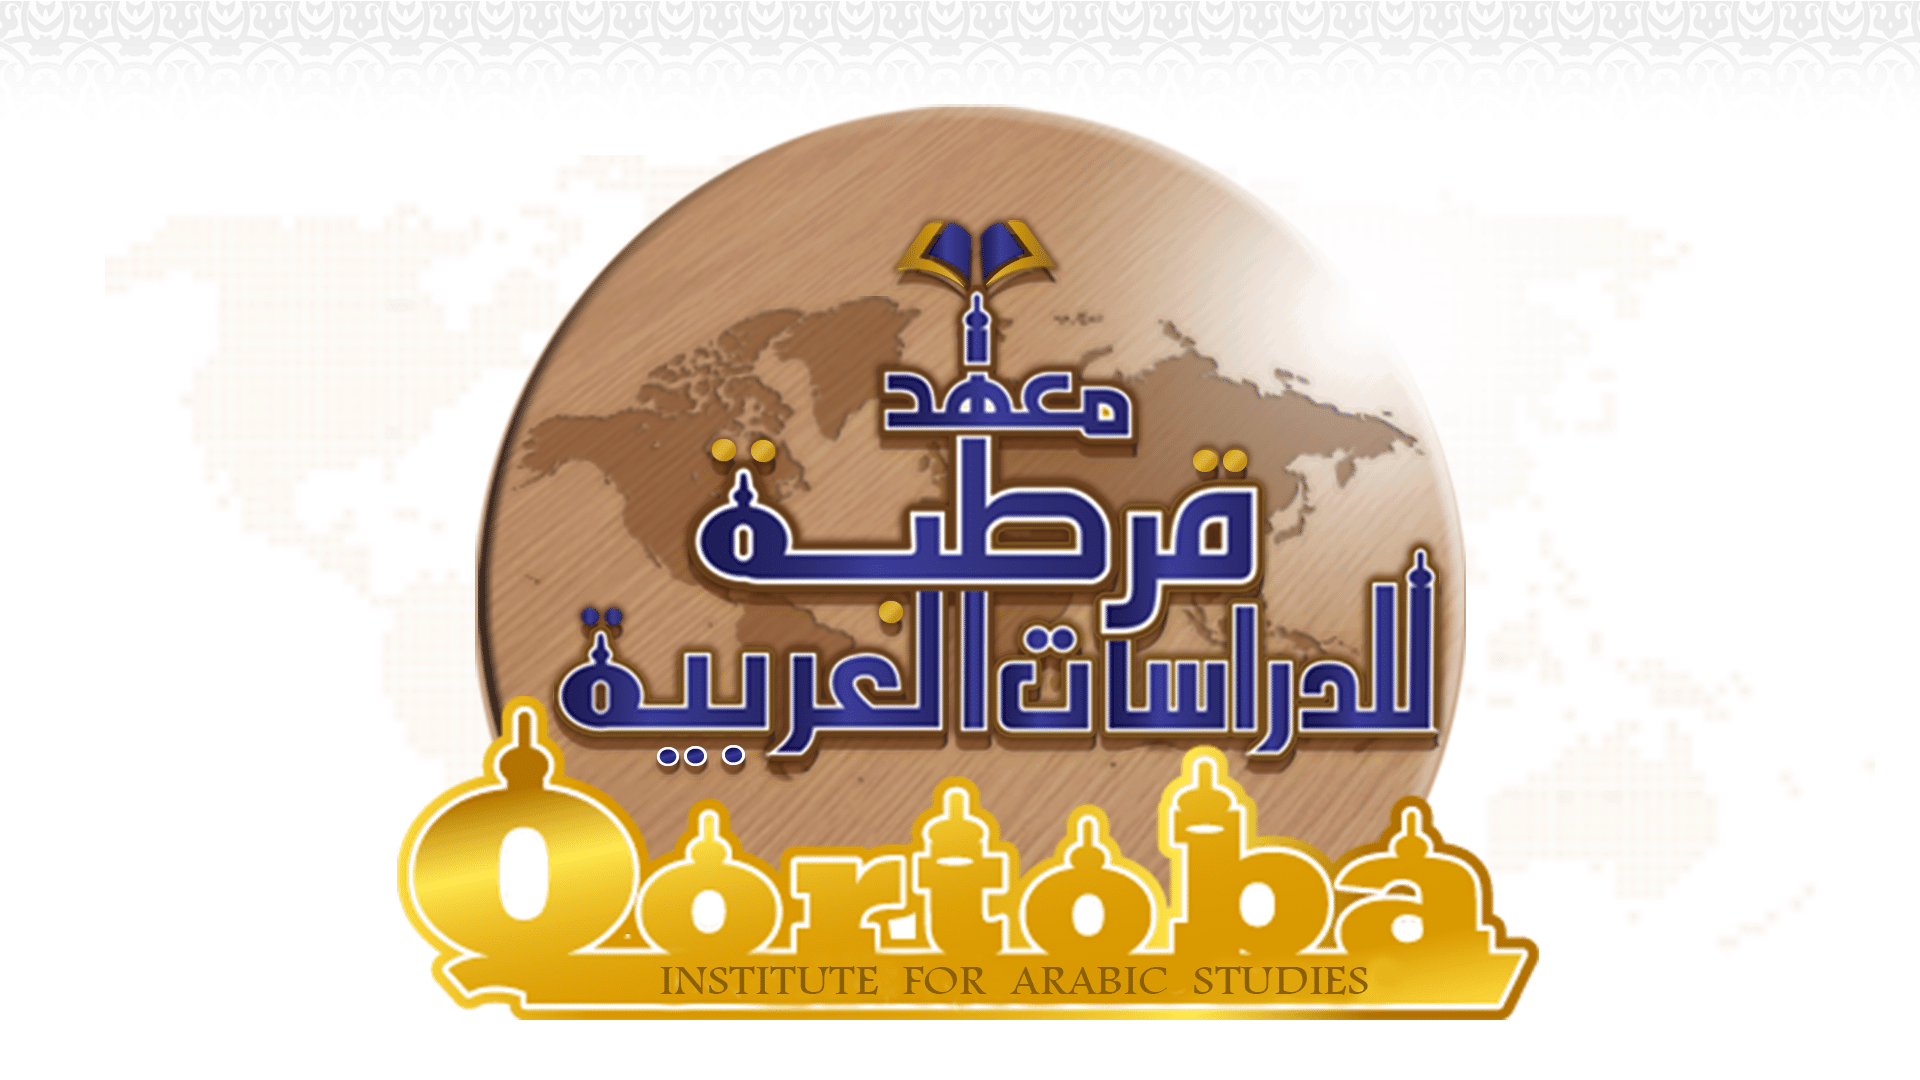 Qortoba Institute for Arabic Studies